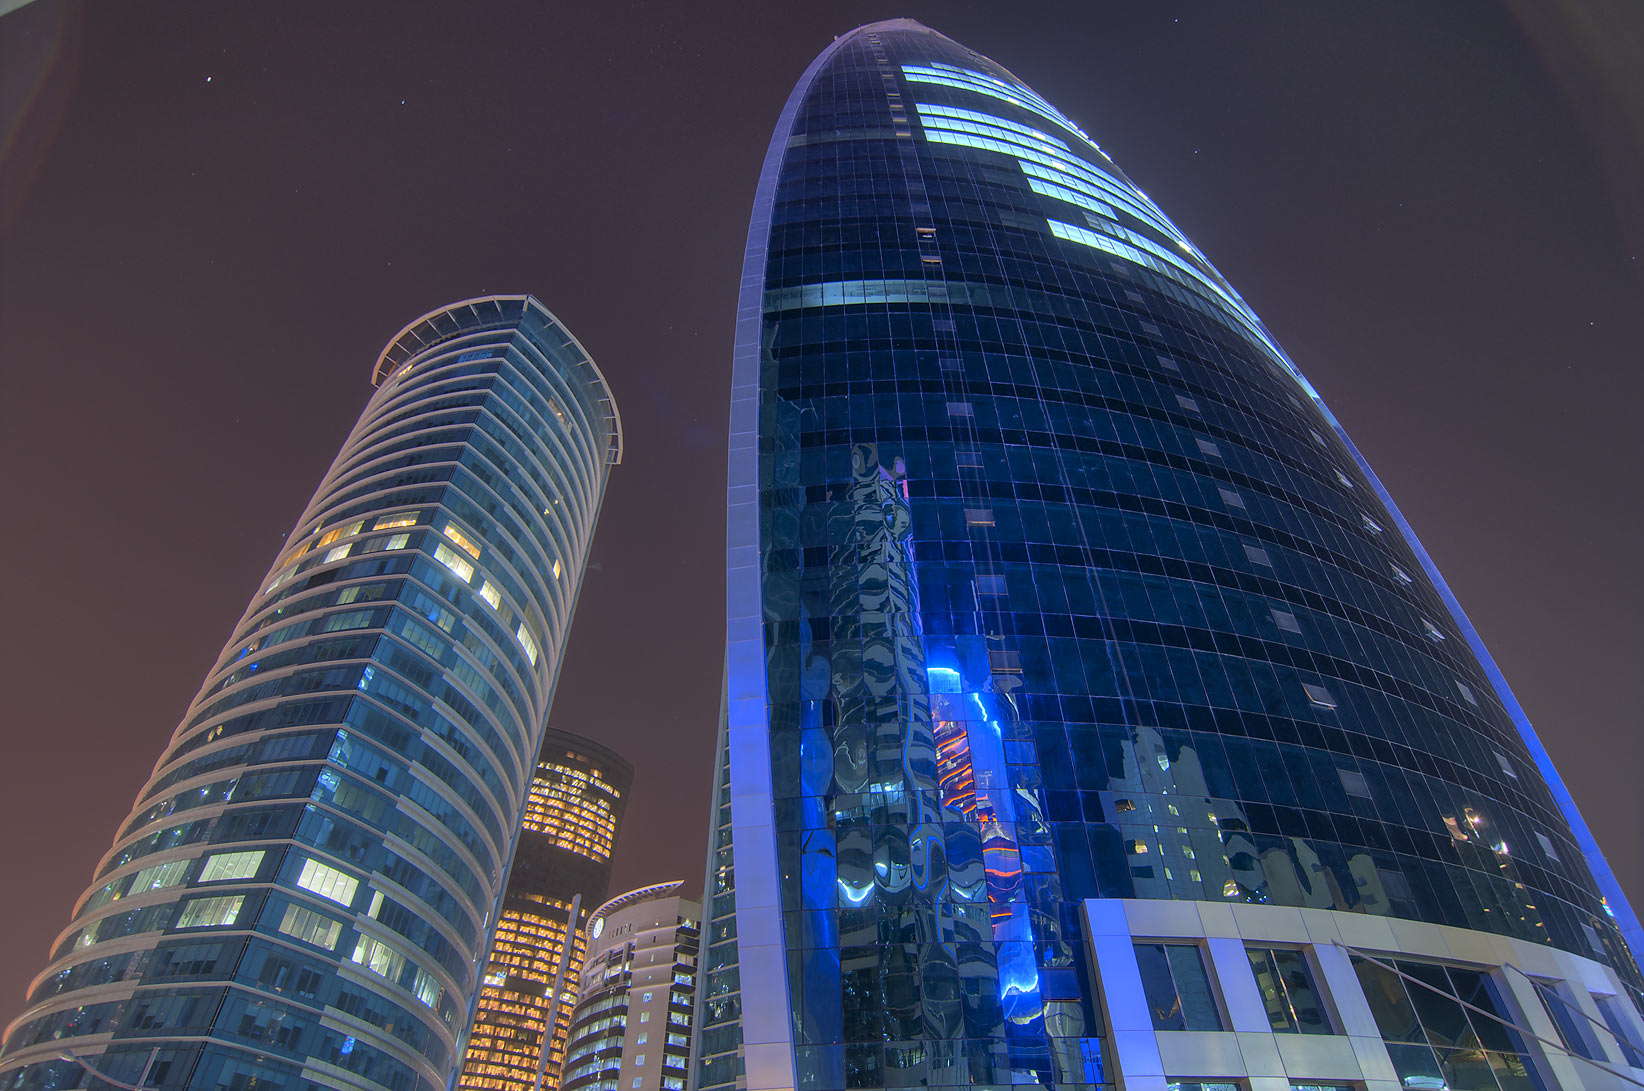 Al Fardan and Woqod towers in West Bay. Doha, Qatar